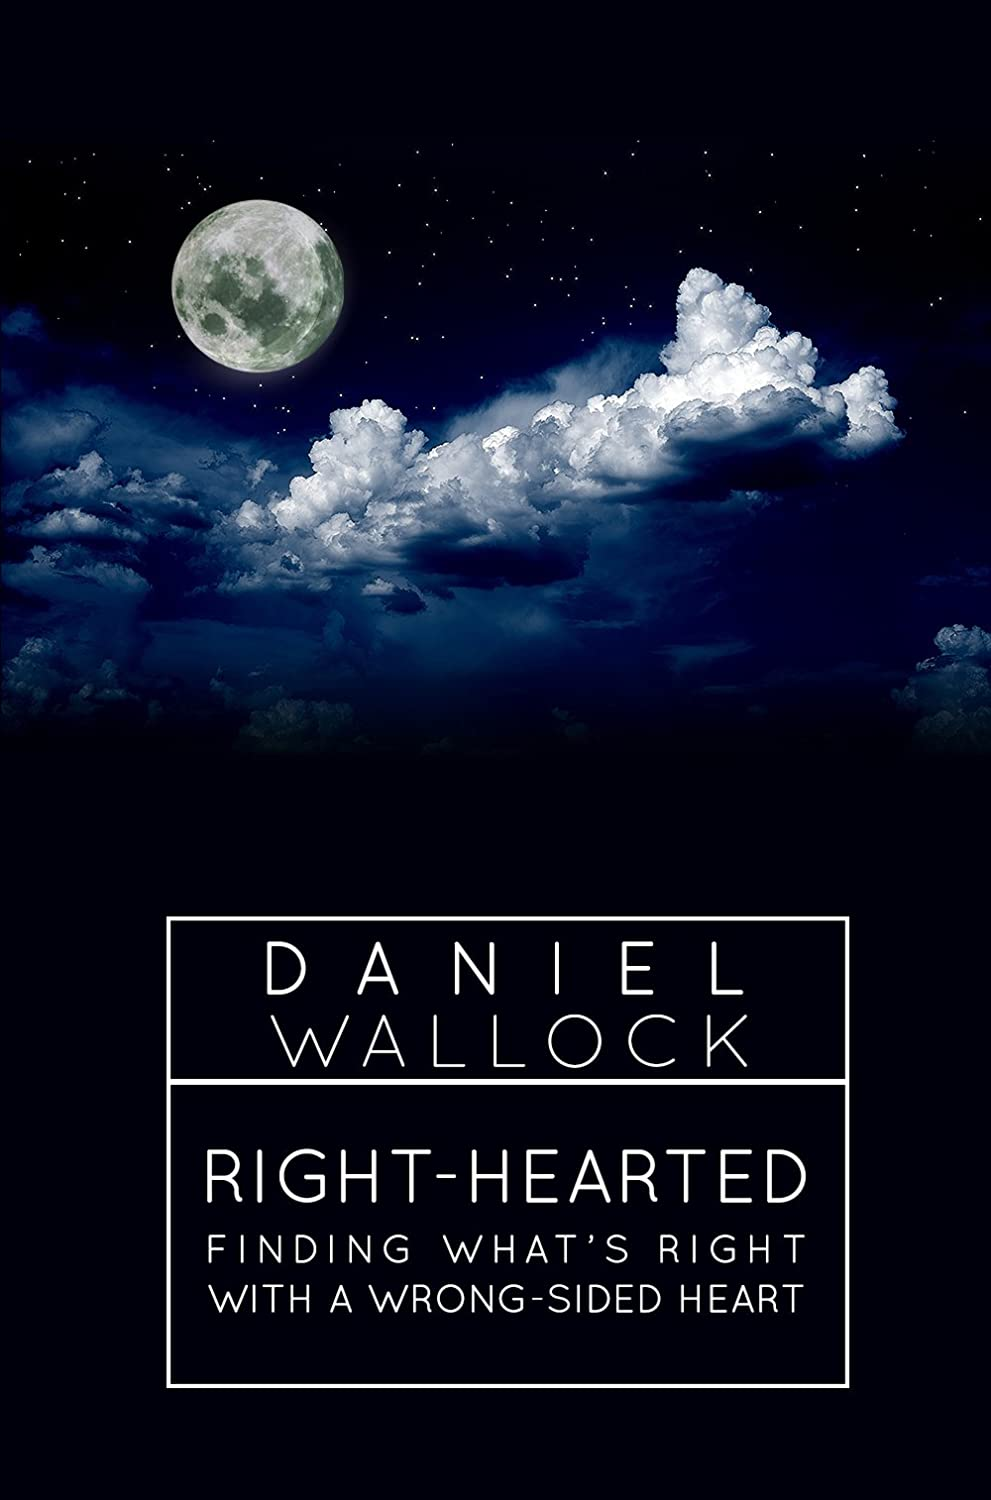 Right-Hearted: Finding What's Right With a Wrong-Sided Heart